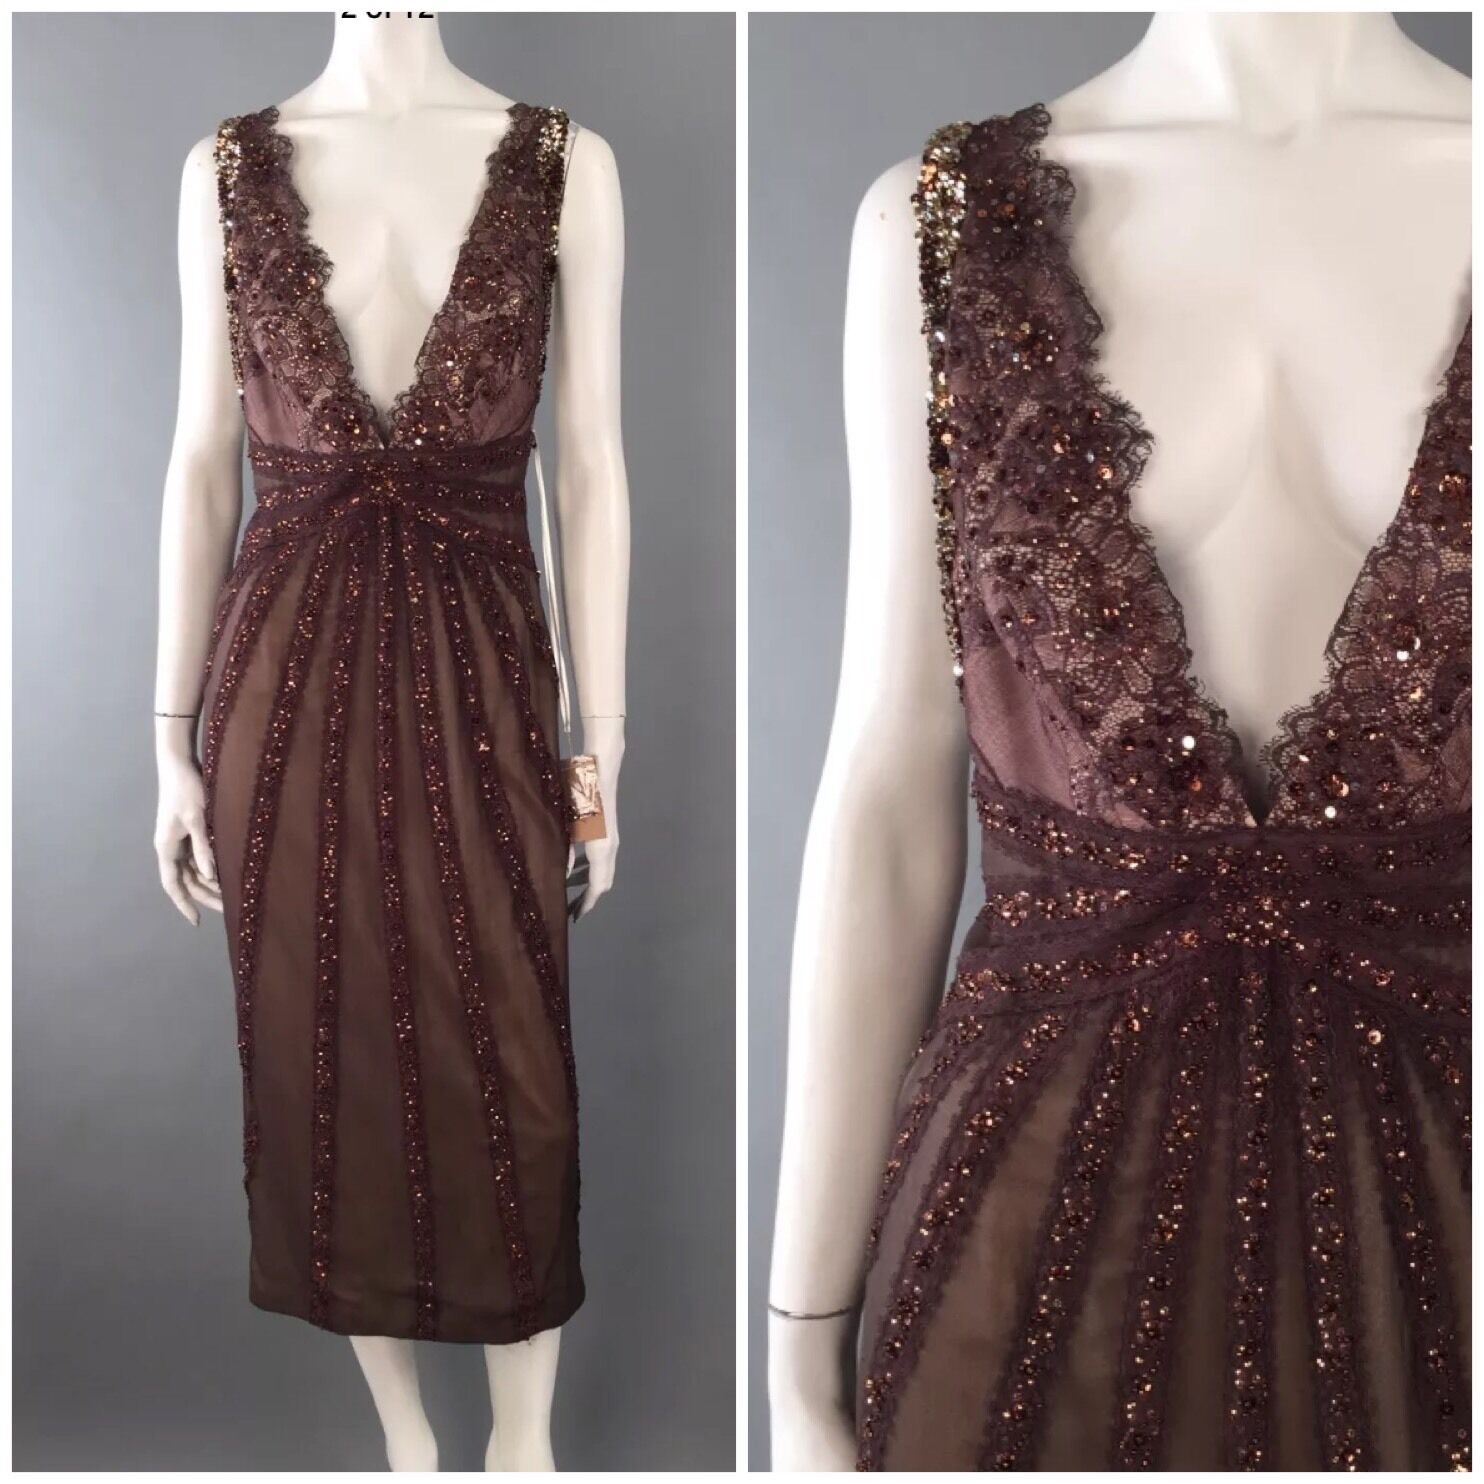 Mandalay NWT  1500   10   Brown Beaded Gown Sequined Swarovski Crystals Dress